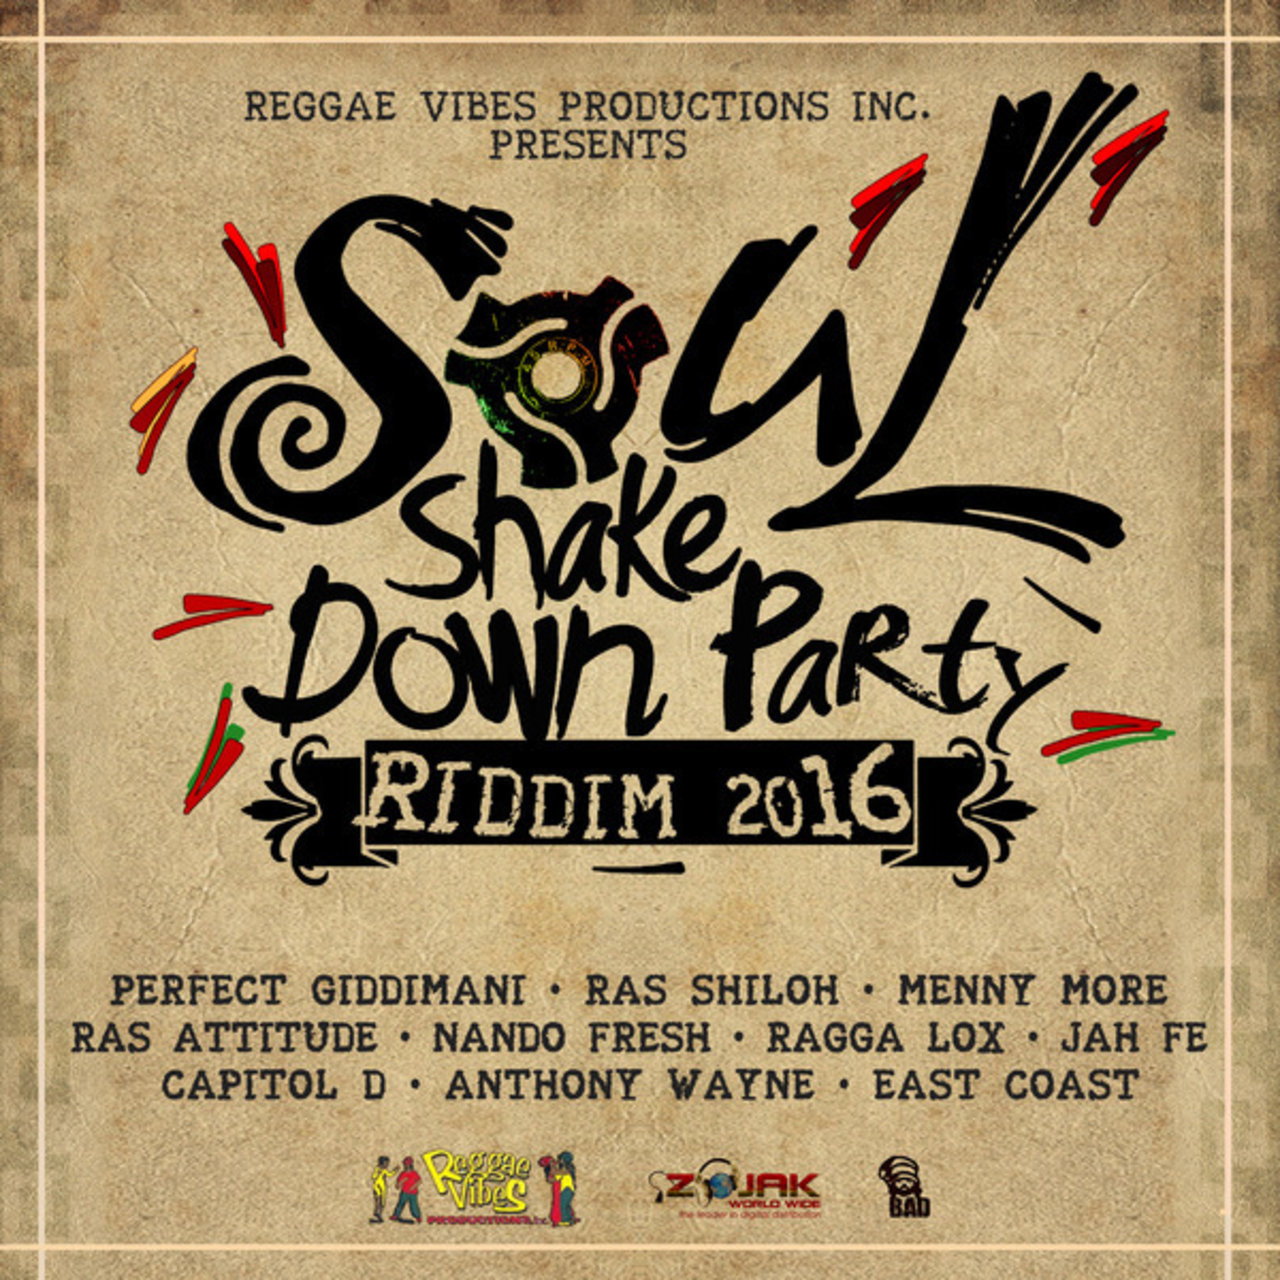 Soul Shake Down Party Riddim 2016